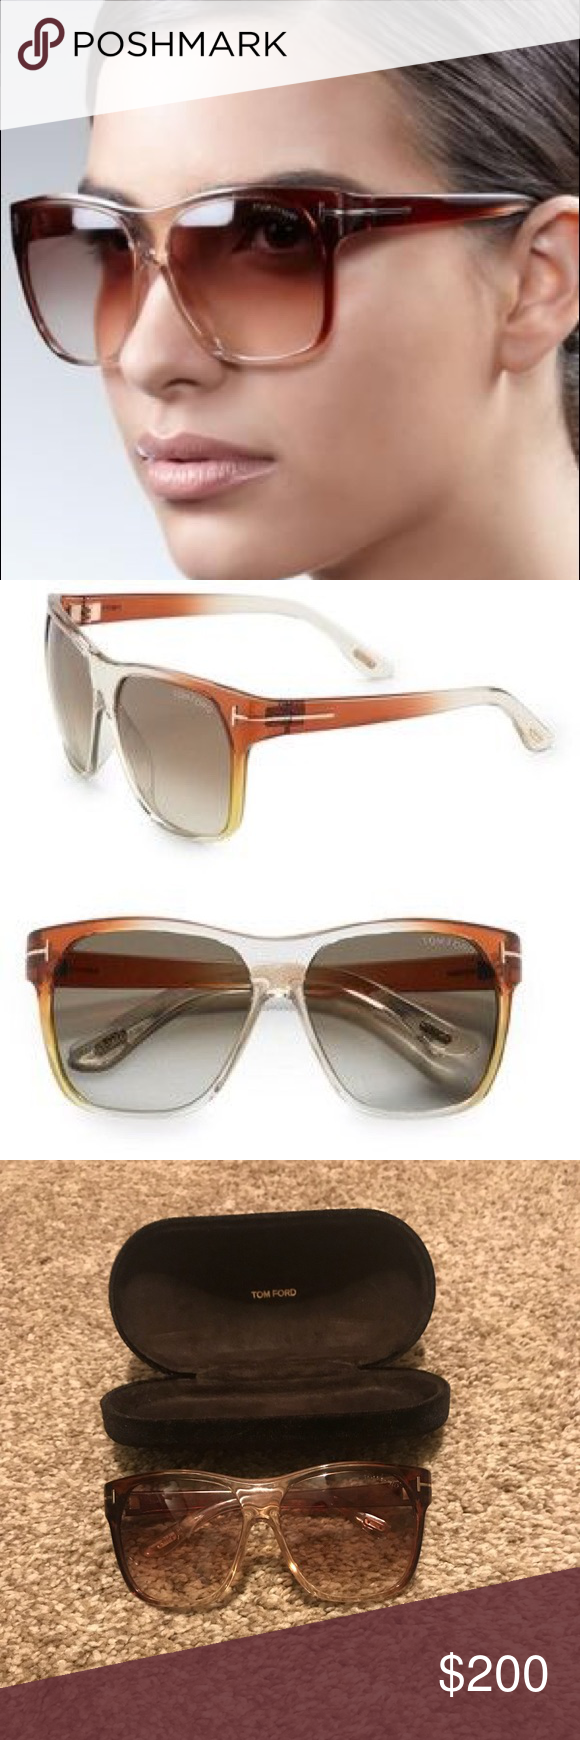 99ff5fe62a Tom Ford Federico sunglasses Excellent condition! Tom Ford Accessories  Sunglasses